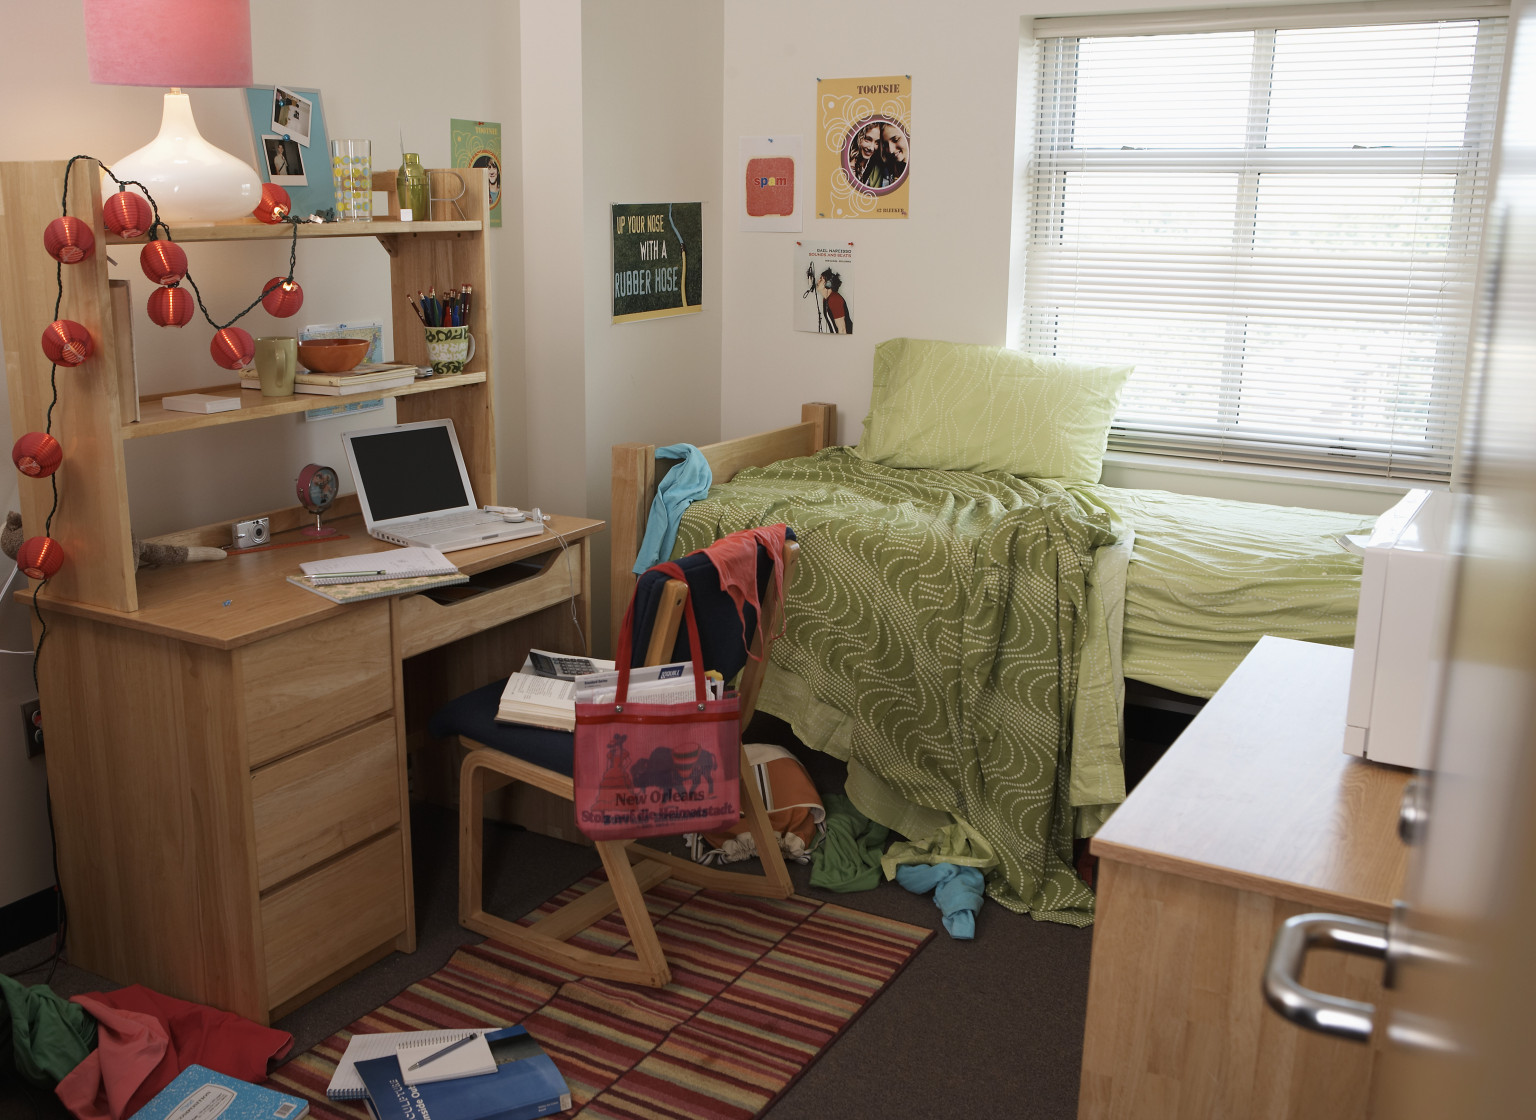 Diy dorm room design huffpost for College student living room ideas